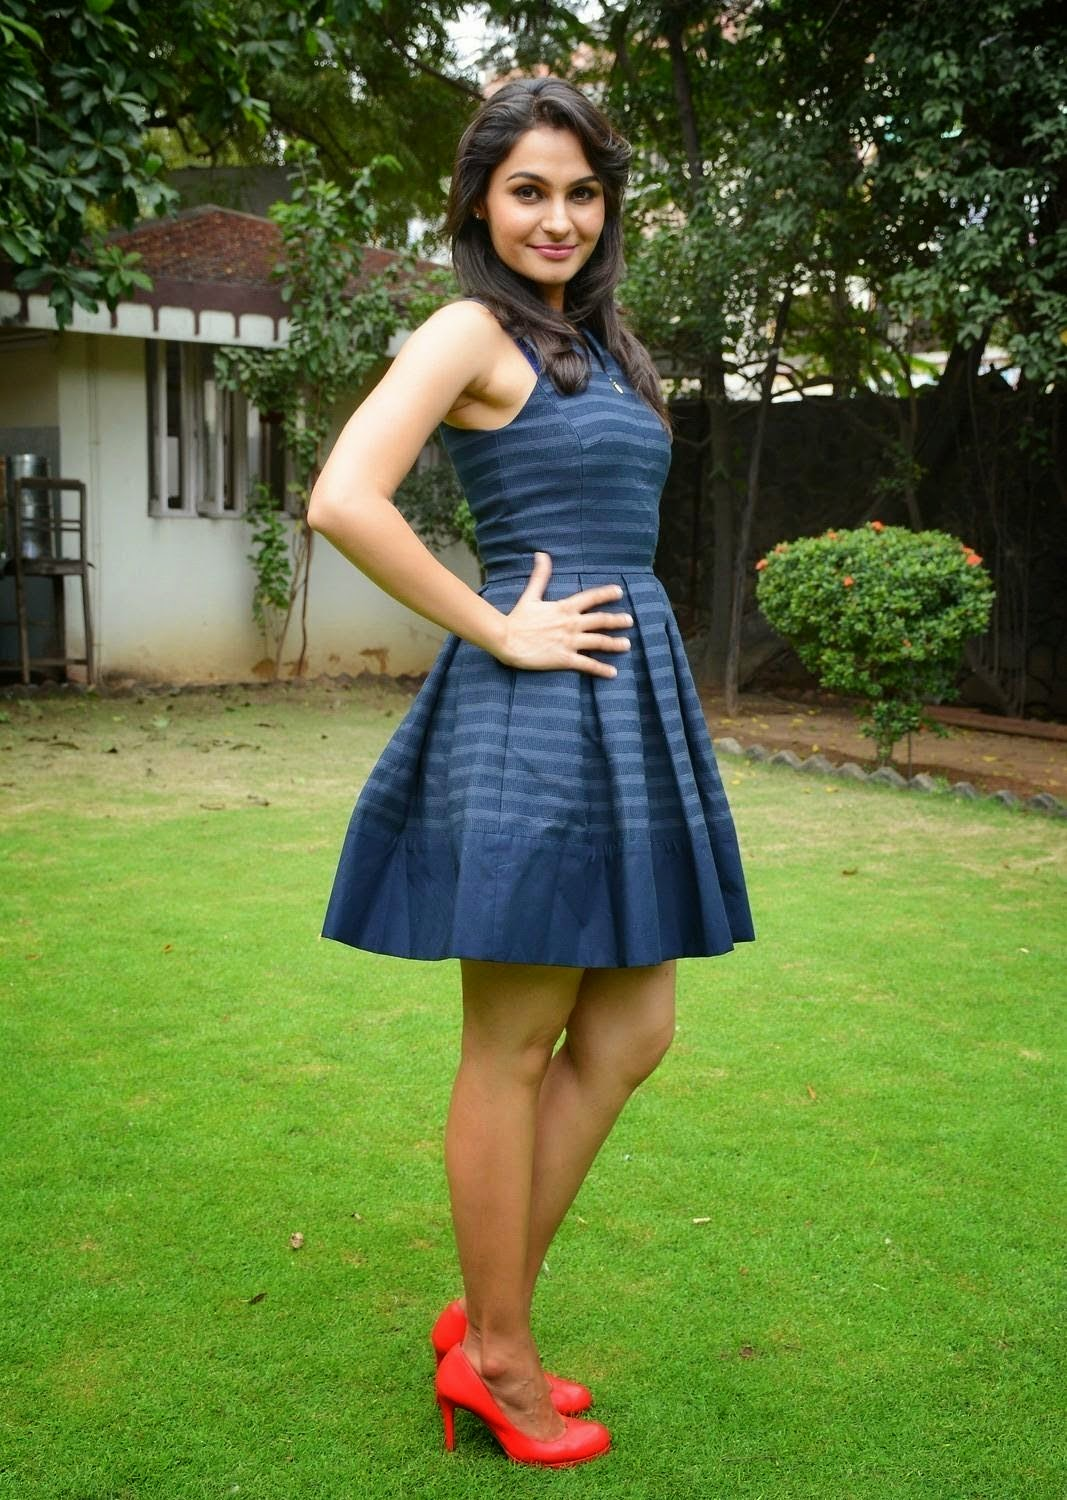 andreas hindu single women Looking for indian women or indian men in pittsburgh, pa local indian dating service at idating4youcom find indian singles in pittsburgh register now.